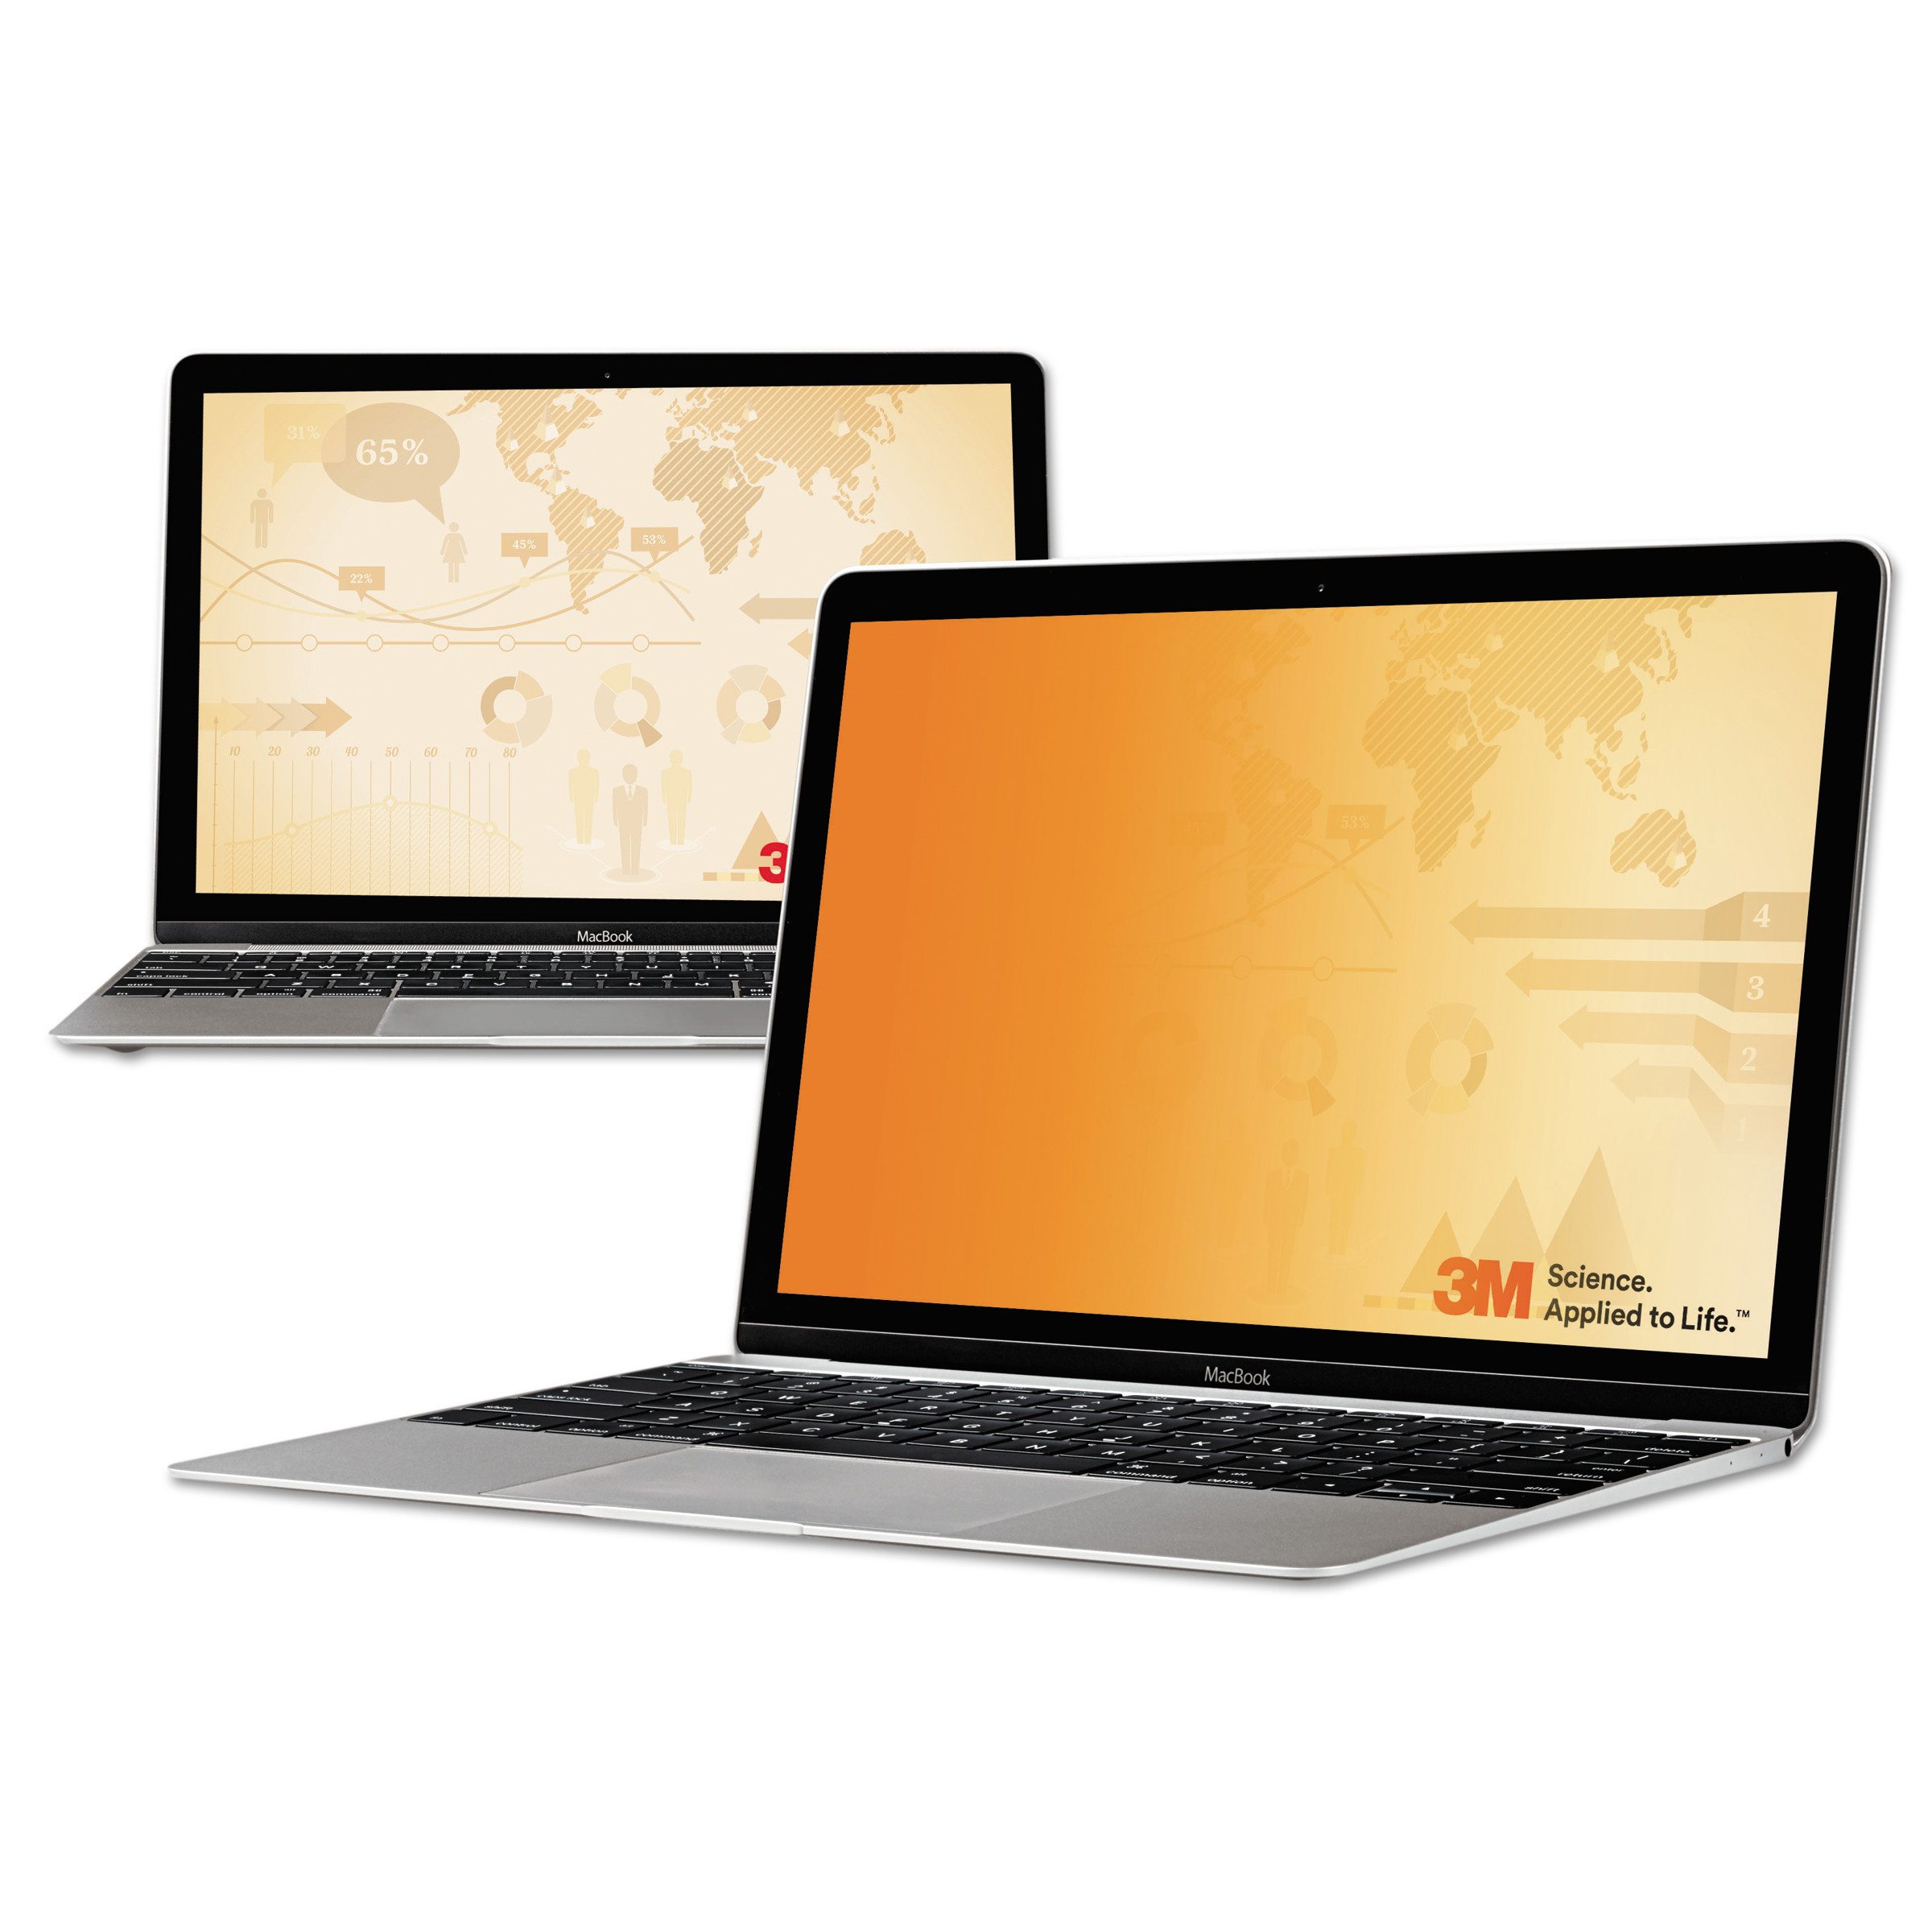 "3M Blackout Frameless Privacy Filter for 13.3"" Widescreen Notebook, 16:9"